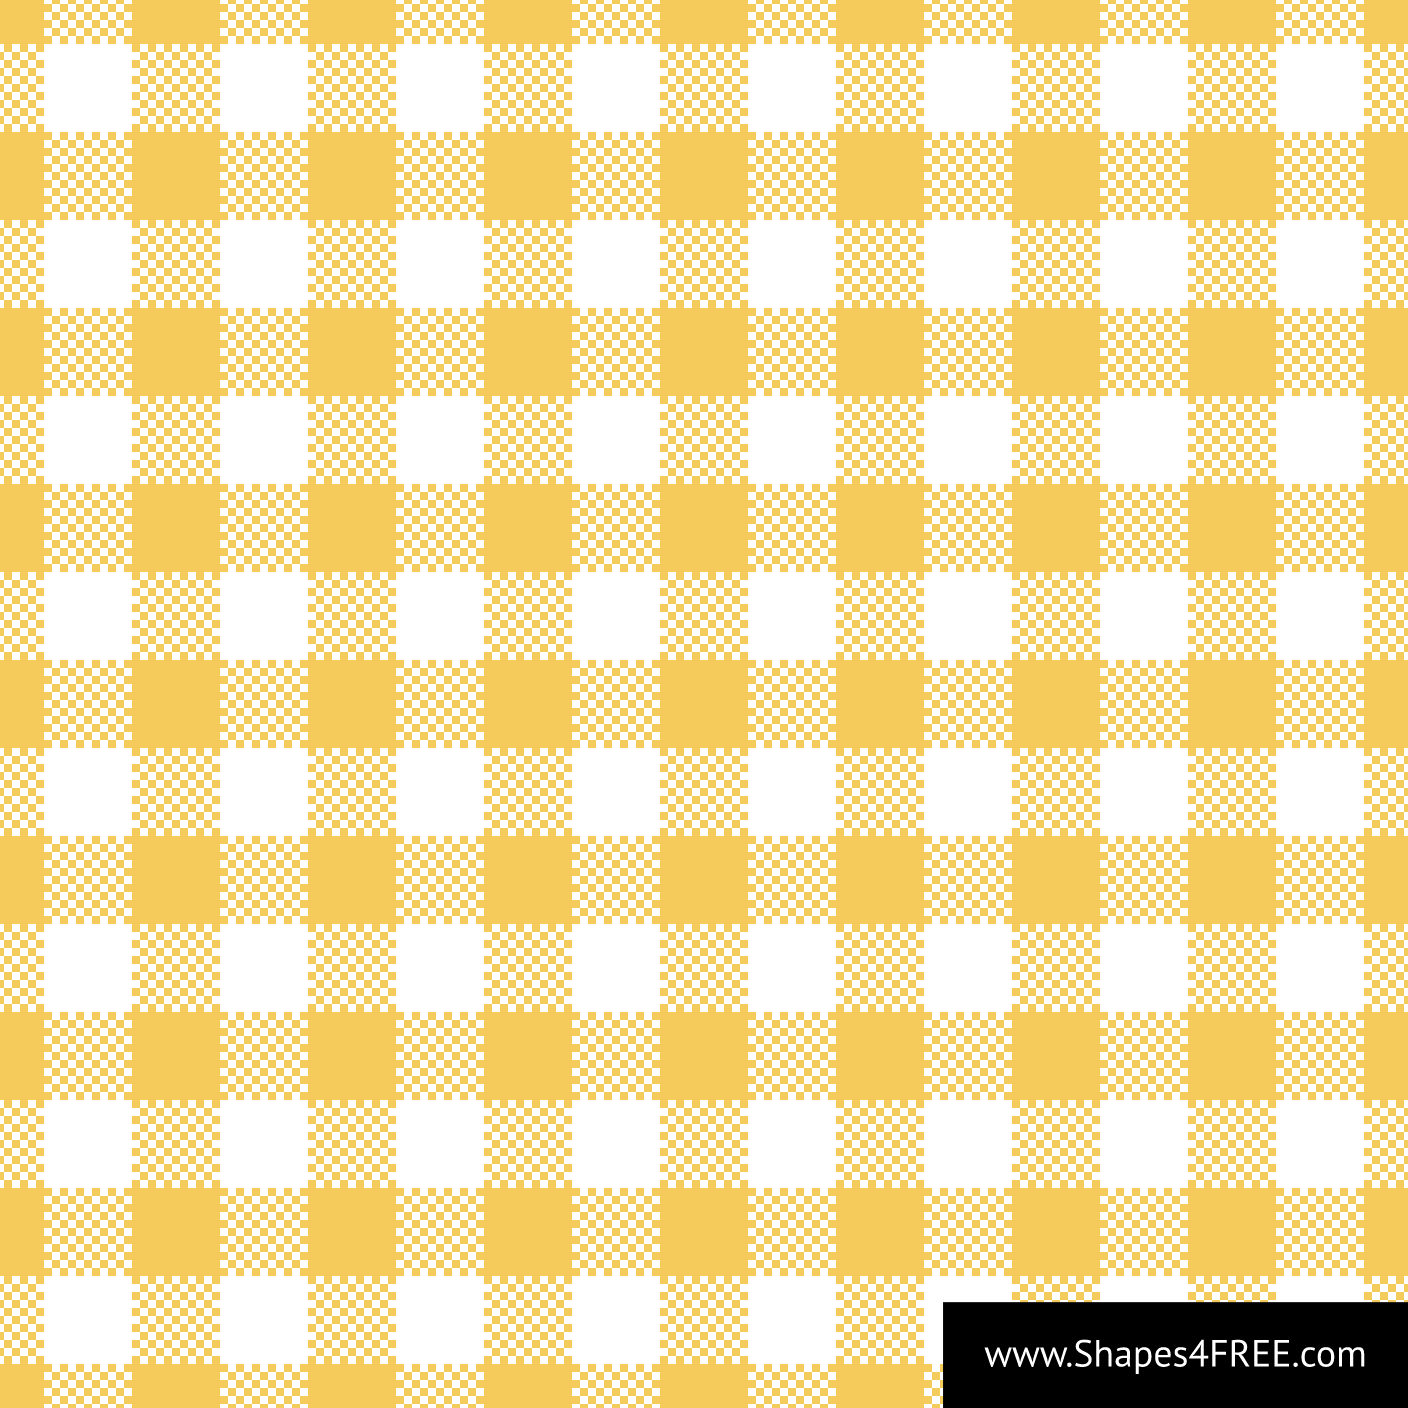 Yellow Gingham Pattern Vector (SVG)